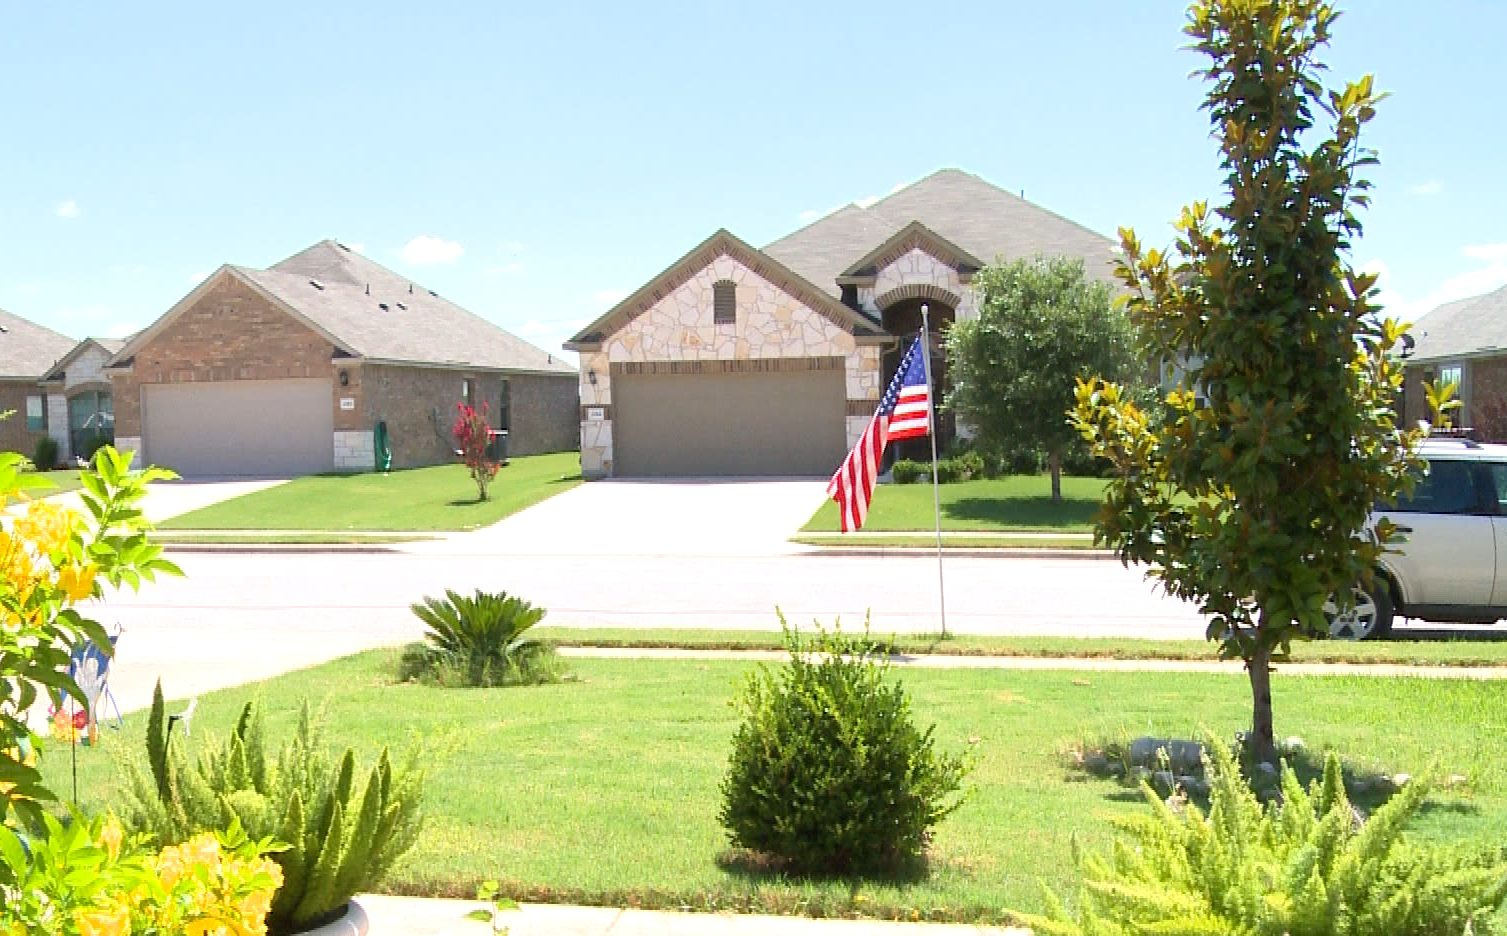 A Hutto HOA asked homeowners to take down their American flags_302946